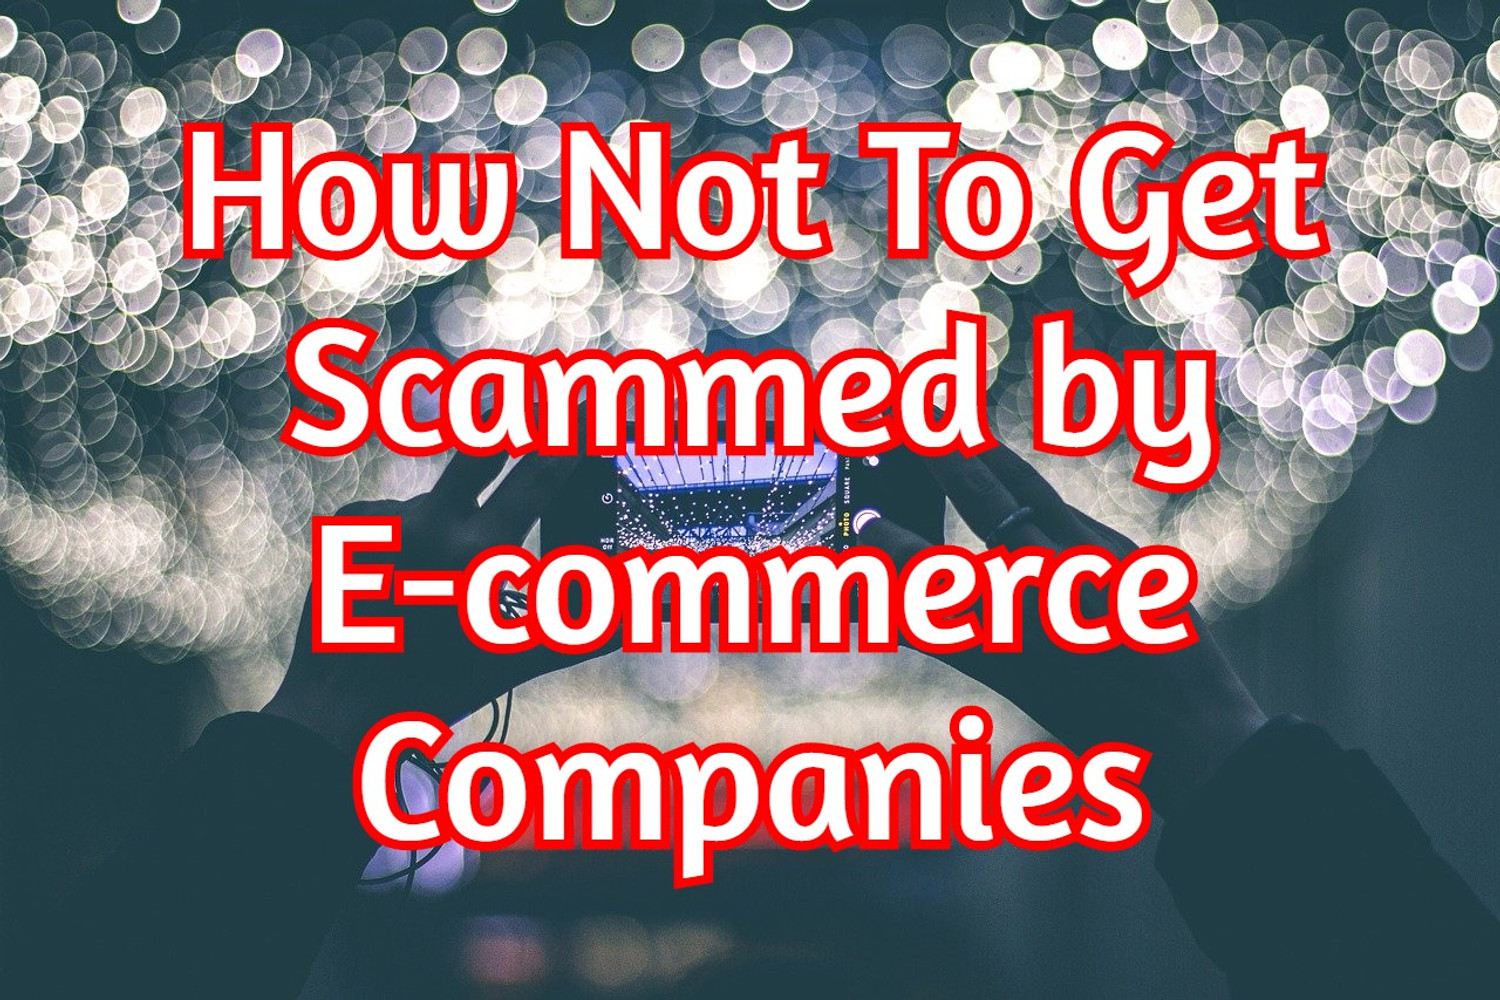 ​How Not to get Scammed by E-Commerce Companies